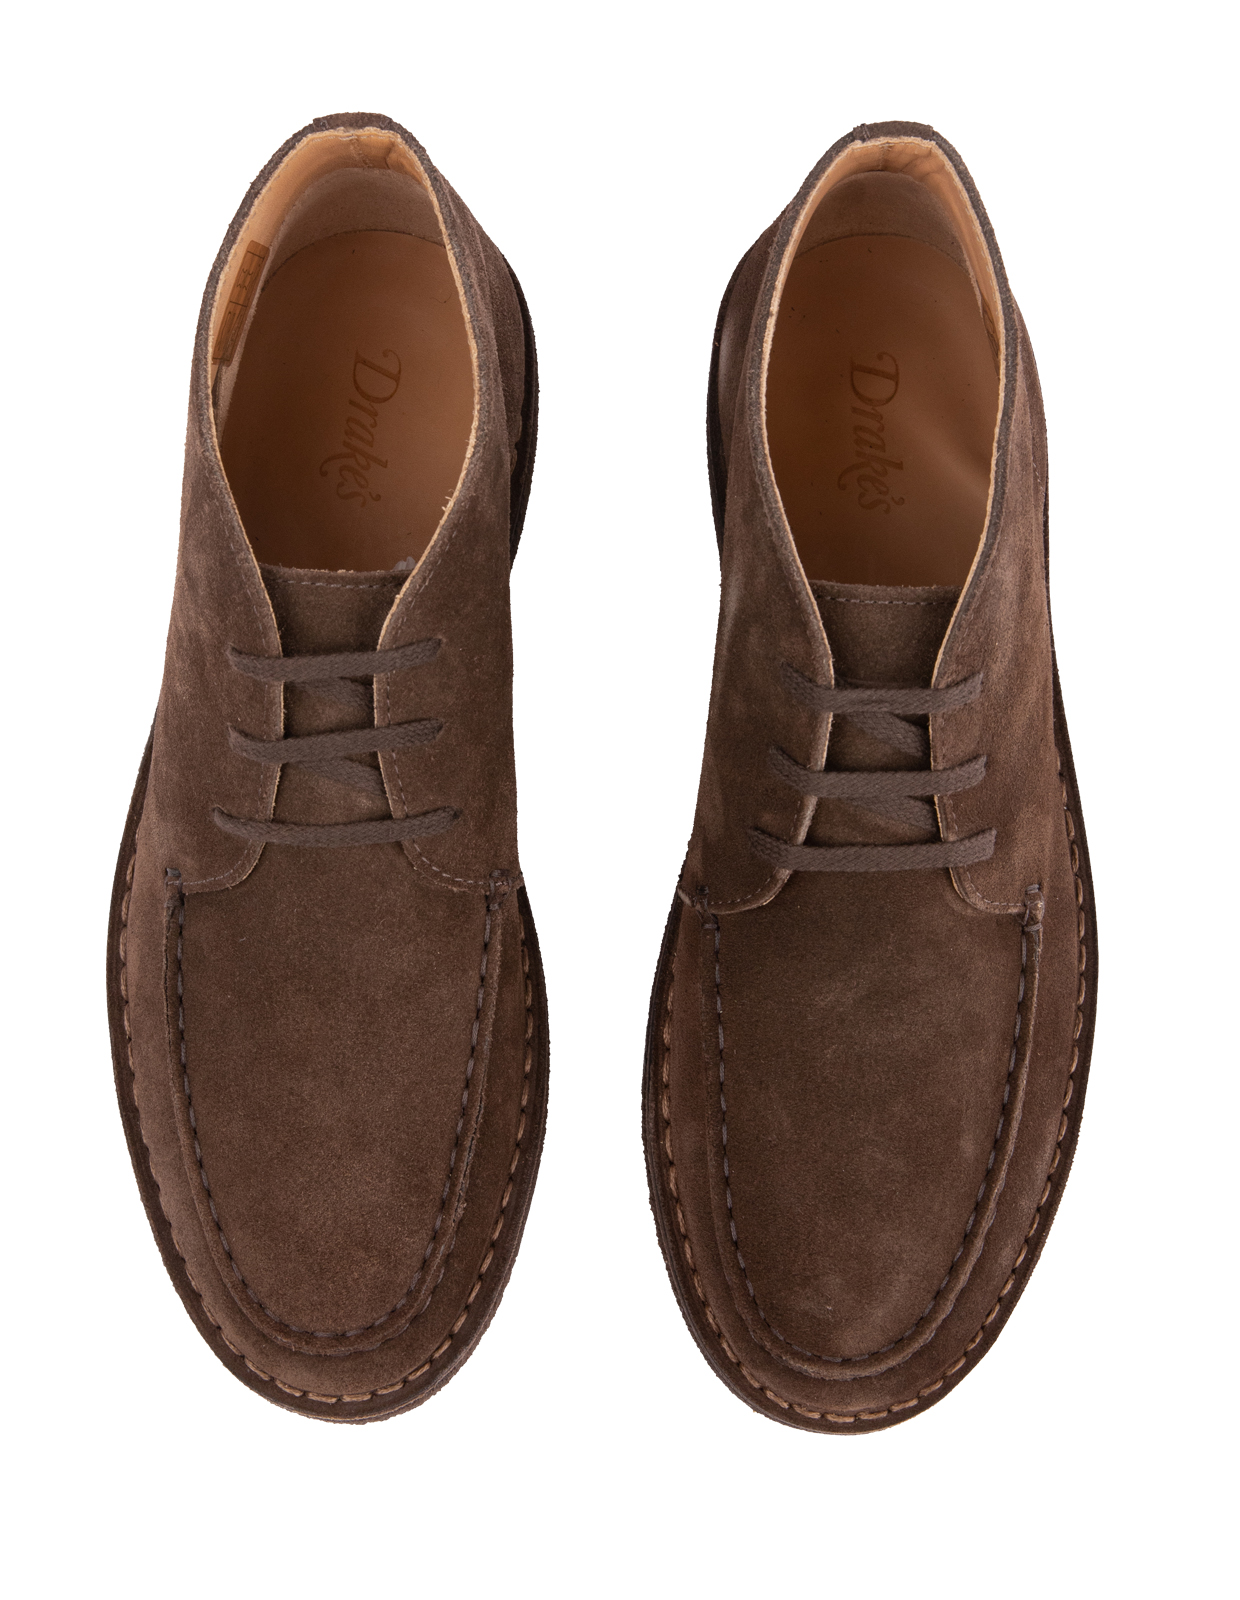 Crosby Chukka Boot Suede Rubber Sole Dark Brown